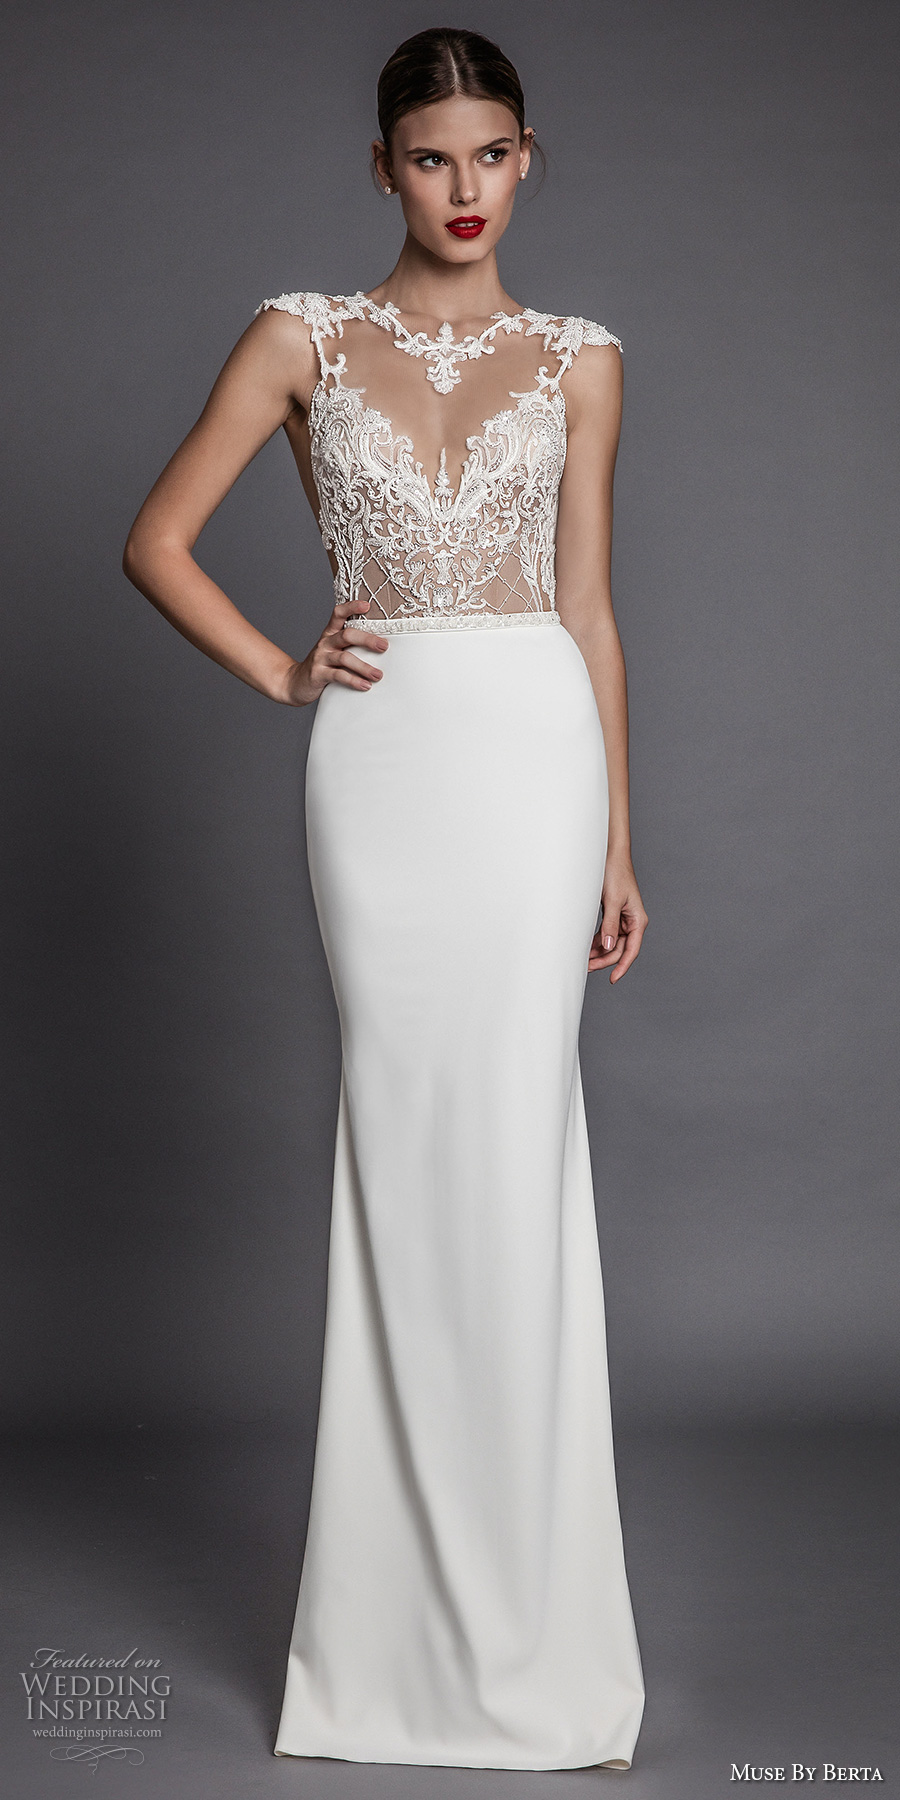 muse berta fall 2017 bridal cap sleeves illusion jewel neck sweetheart neckline heavily embellished bodice elegant glamorous sheath wedding dress open low back (aurora) mv